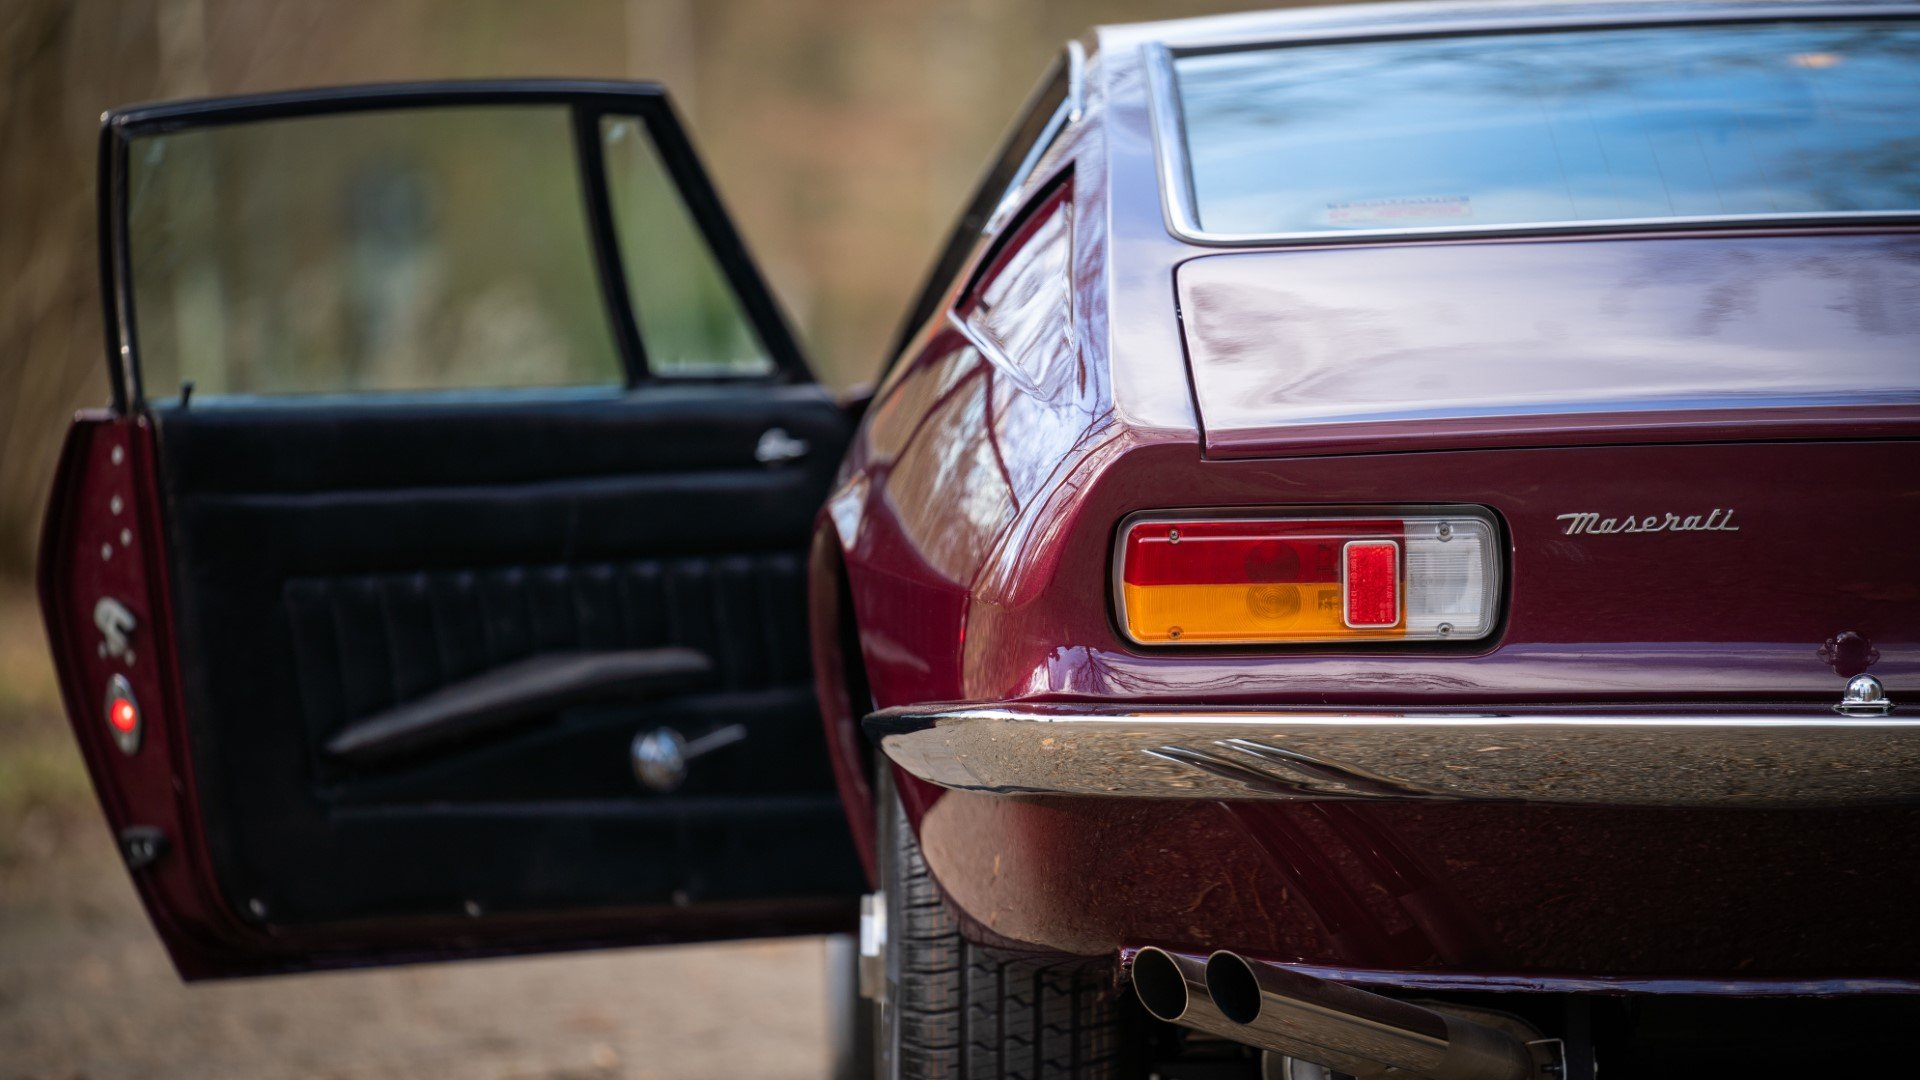 MASERATI GHIBLI Coupe superb restoration (1968) For Sale (picture 6 of 6)